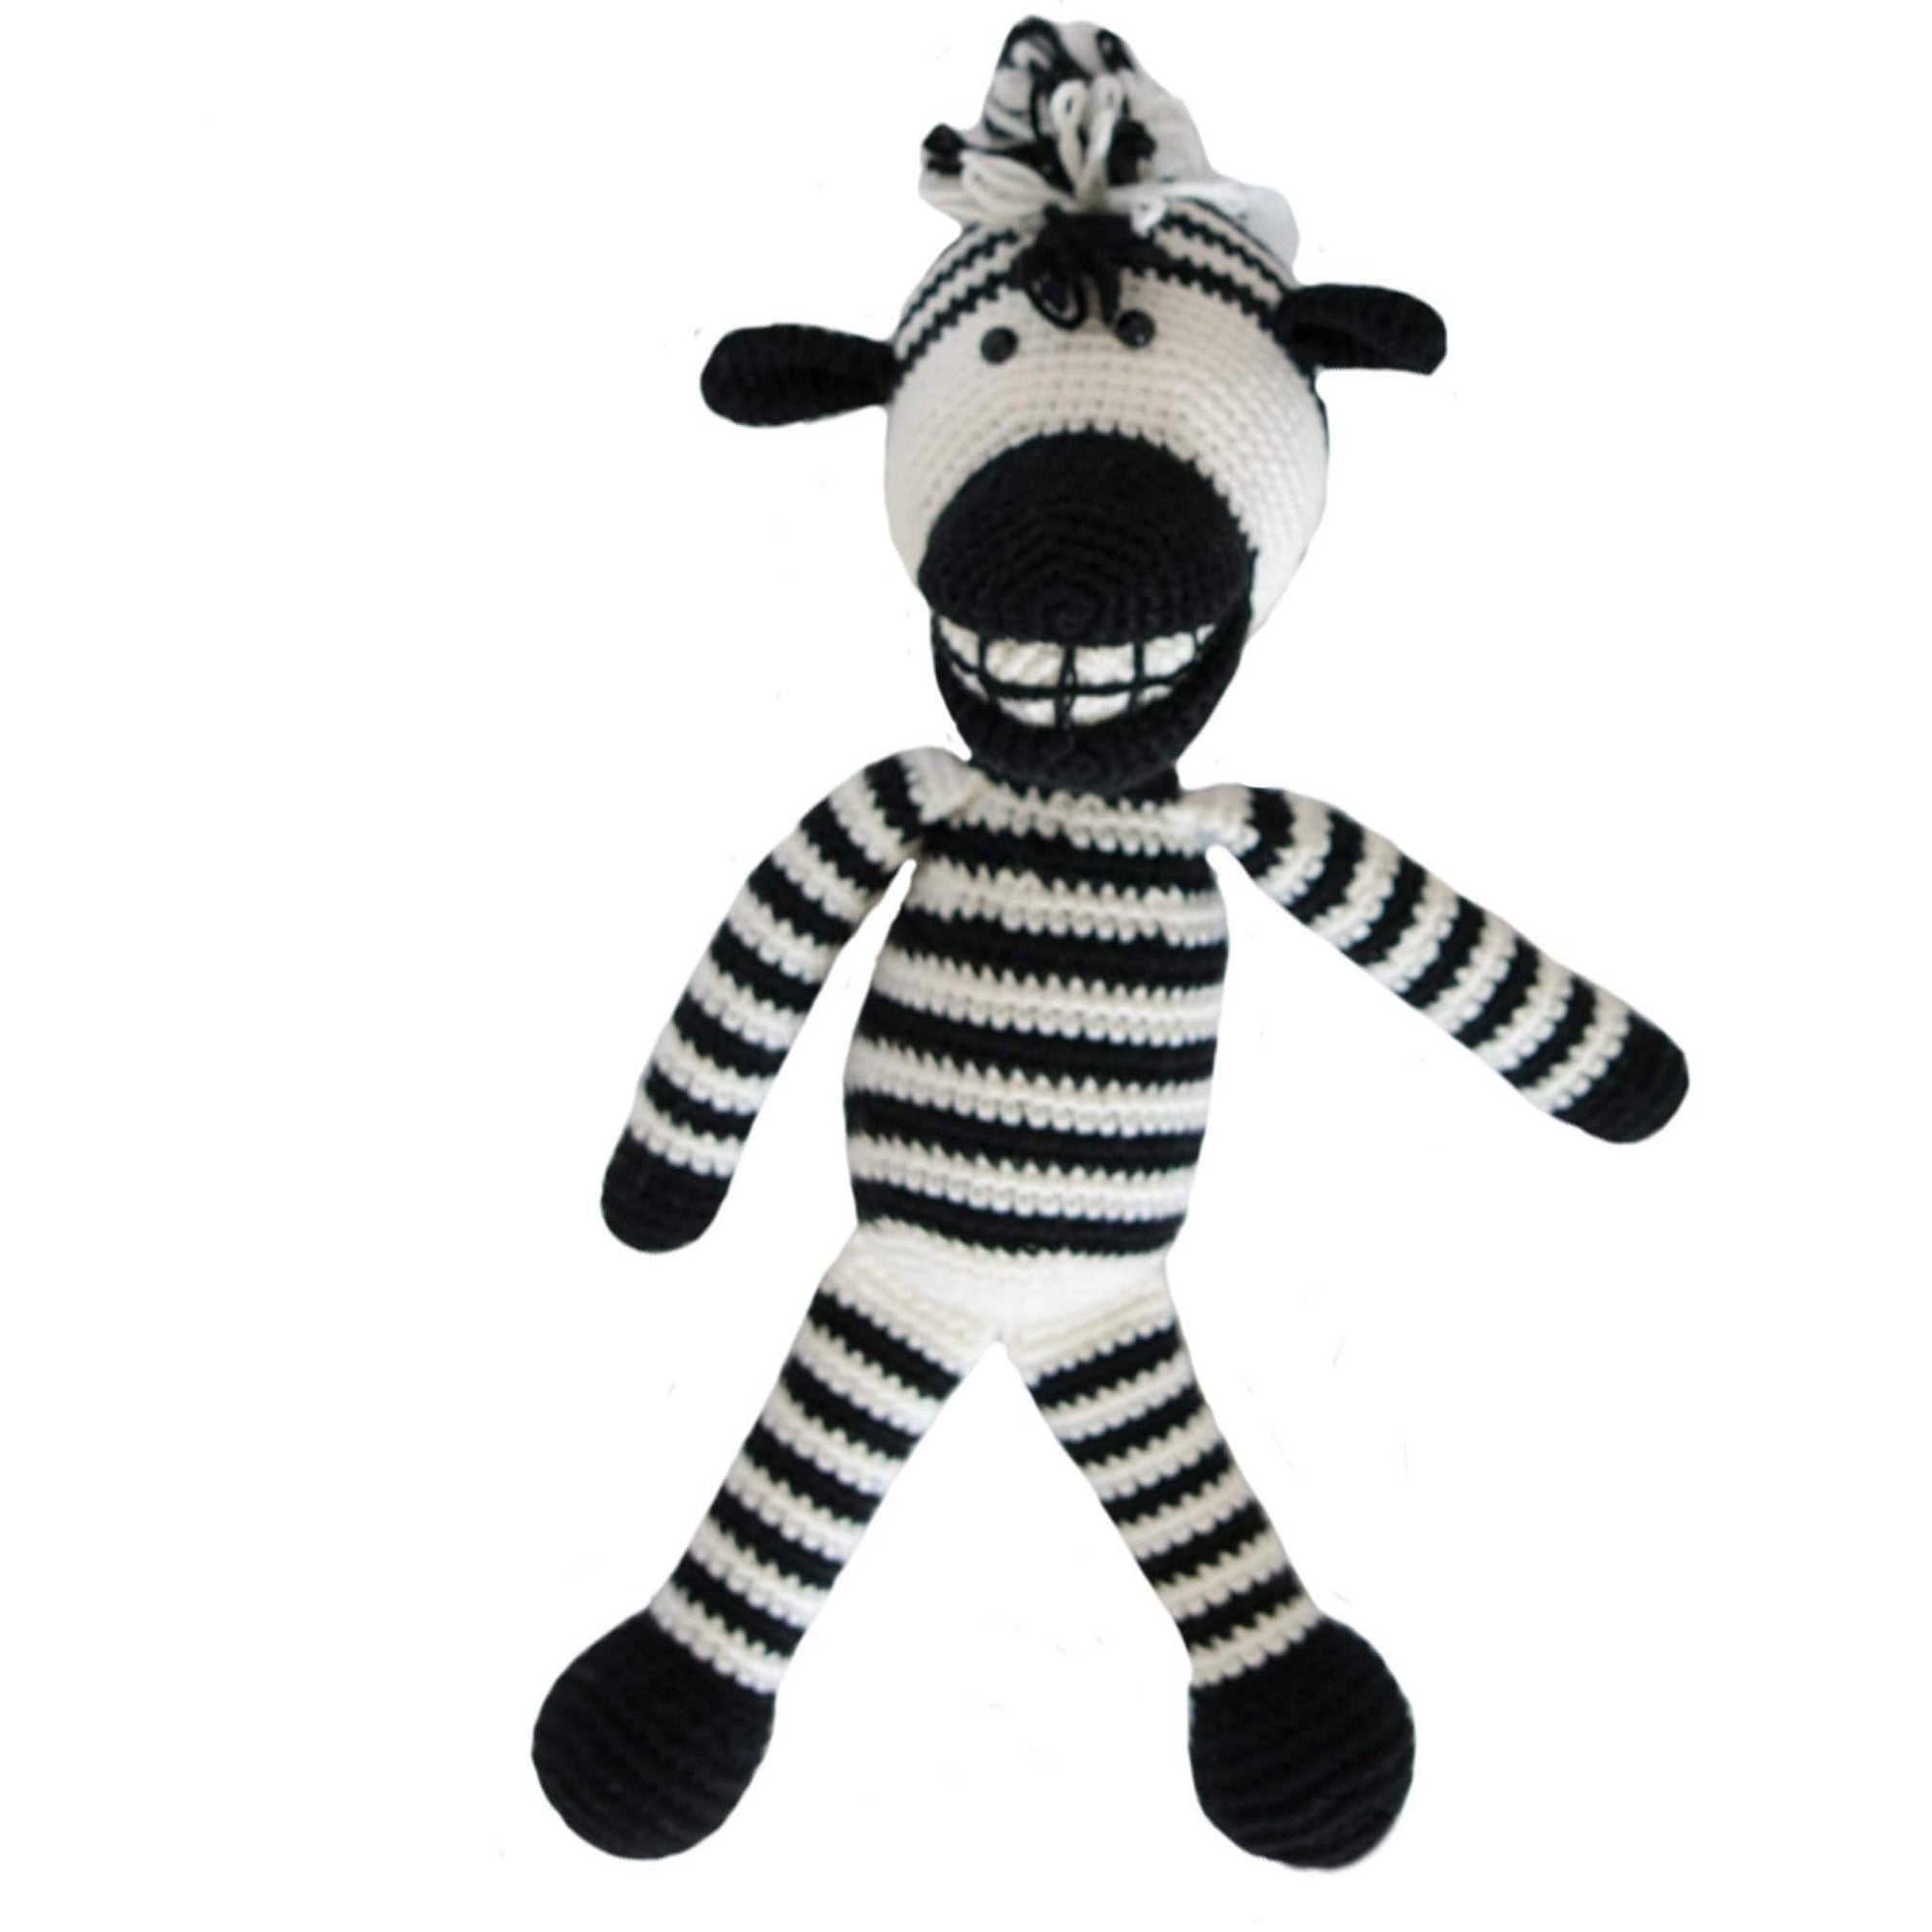 bebemoss.com stuffed animal Lebo the zebra handmade by moms  gifts with purpose